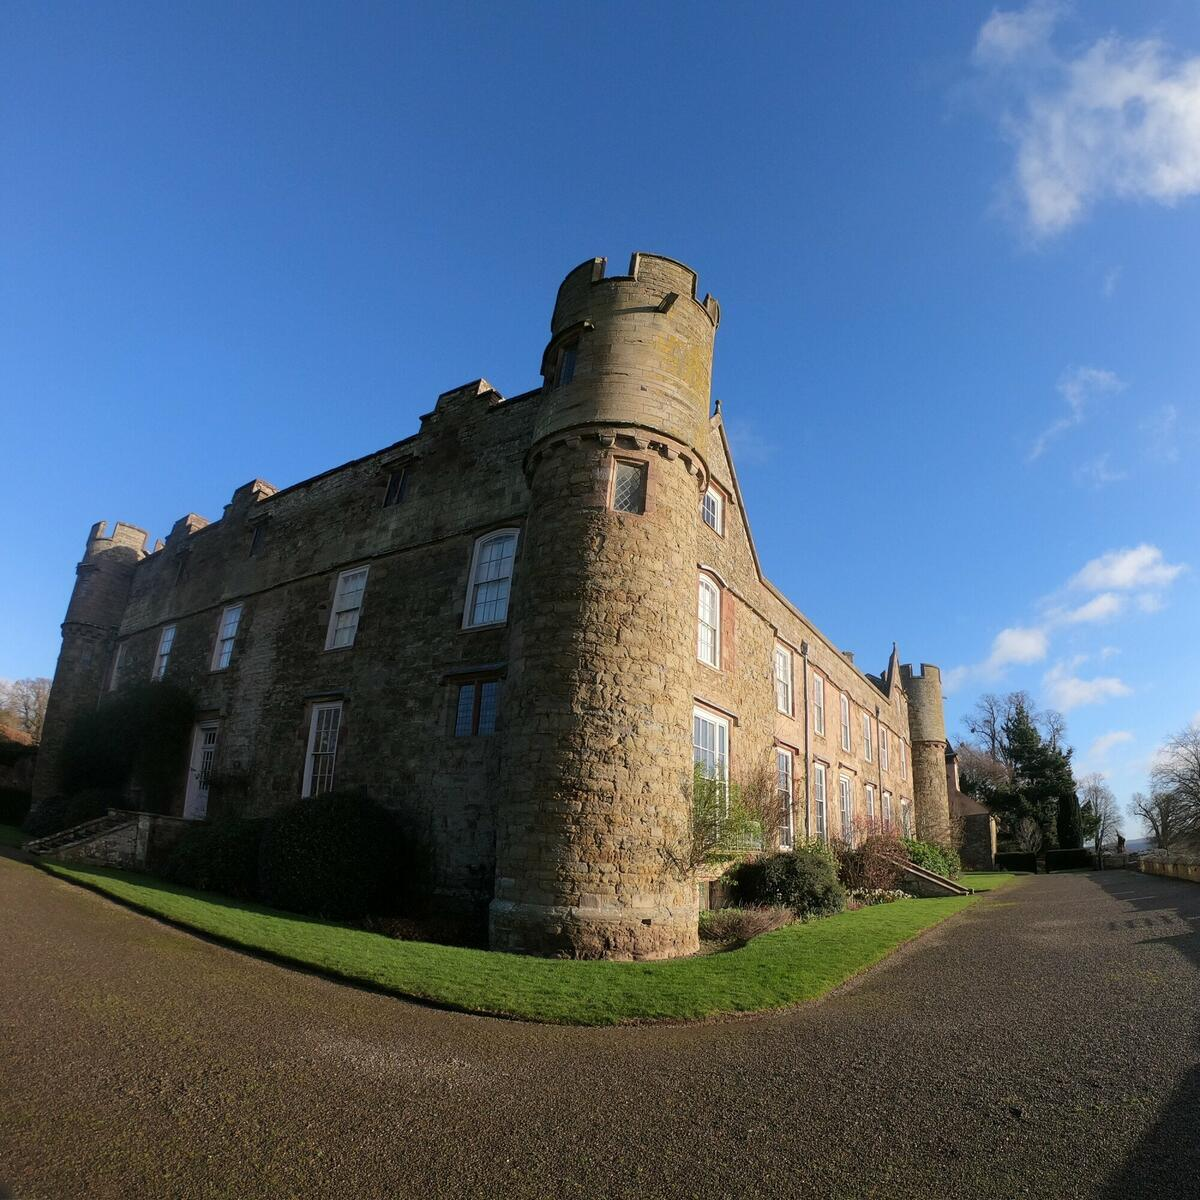 Blue skies over the castle